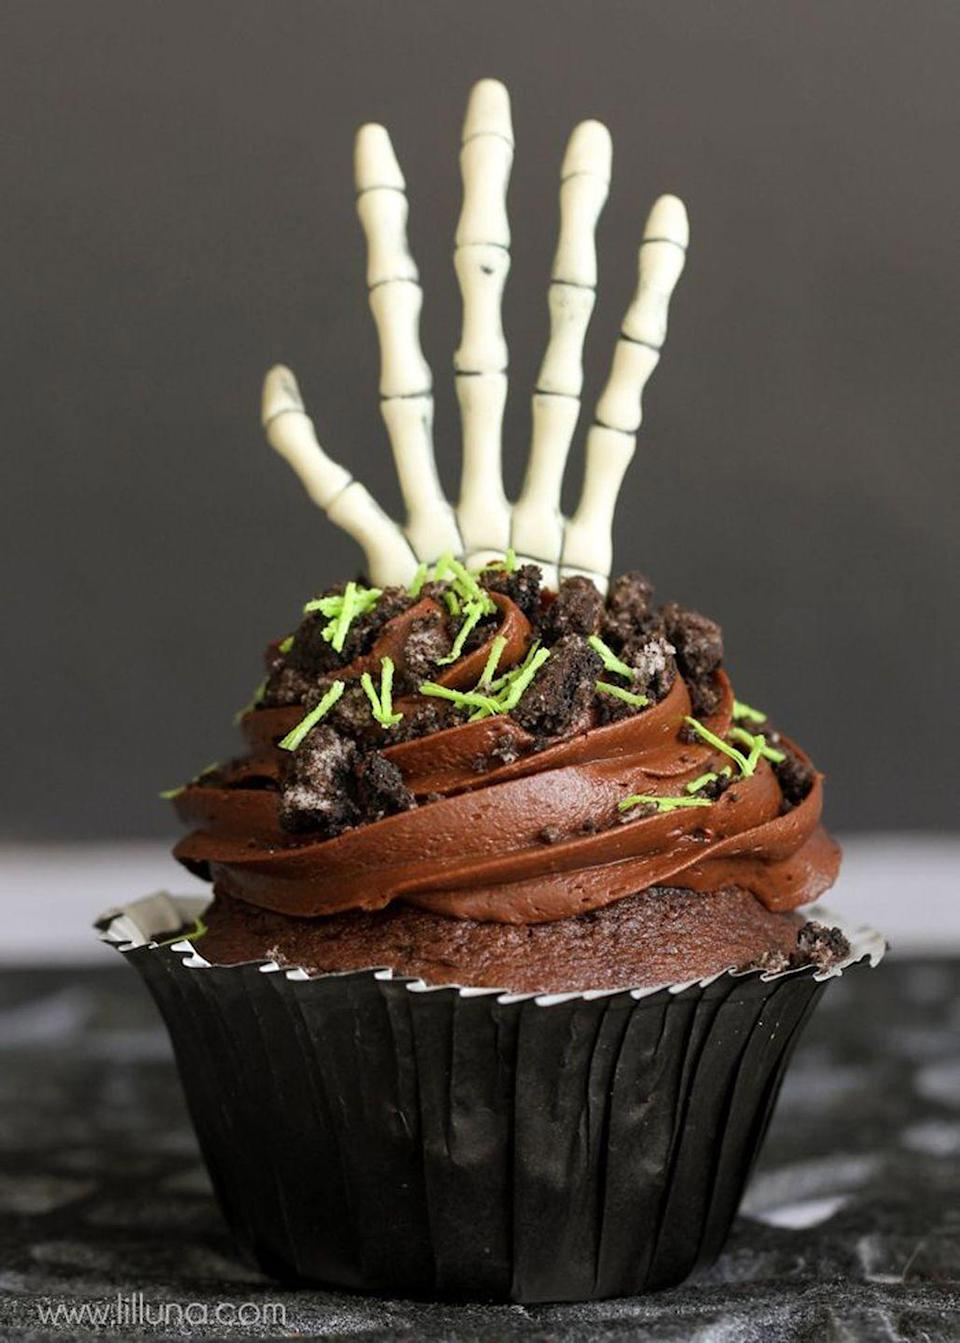 """<p>This double chocolate recipe is to die for. Don't forget to sprinkle Oreo cookie """"dirt"""" on top!</p><p><strong>Get the recipe at <a href=""""http://eighteen25.com/2015/09/creepy-halloween-cupcakes/"""" rel=""""nofollow noopener"""" target=""""_blank"""" data-ylk=""""slk:Eighteen 25"""" class=""""link rapid-noclick-resp"""">Eighteen 25</a>.</strong></p><p><a class=""""link rapid-noclick-resp"""" href=""""https://www.amazon.com/Hamilton-Beach-62682RZ-Mixer-Snap/dp/B001CH0ZLE?tag=syn-yahoo-20&ascsubtag=%5Bartid%7C10050.g.1366%5Bsrc%7Cyahoo-us"""" rel=""""nofollow noopener"""" target=""""_blank"""" data-ylk=""""slk:SHOP HAND MIXERS"""">SHOP HAND MIXERS</a></p>"""